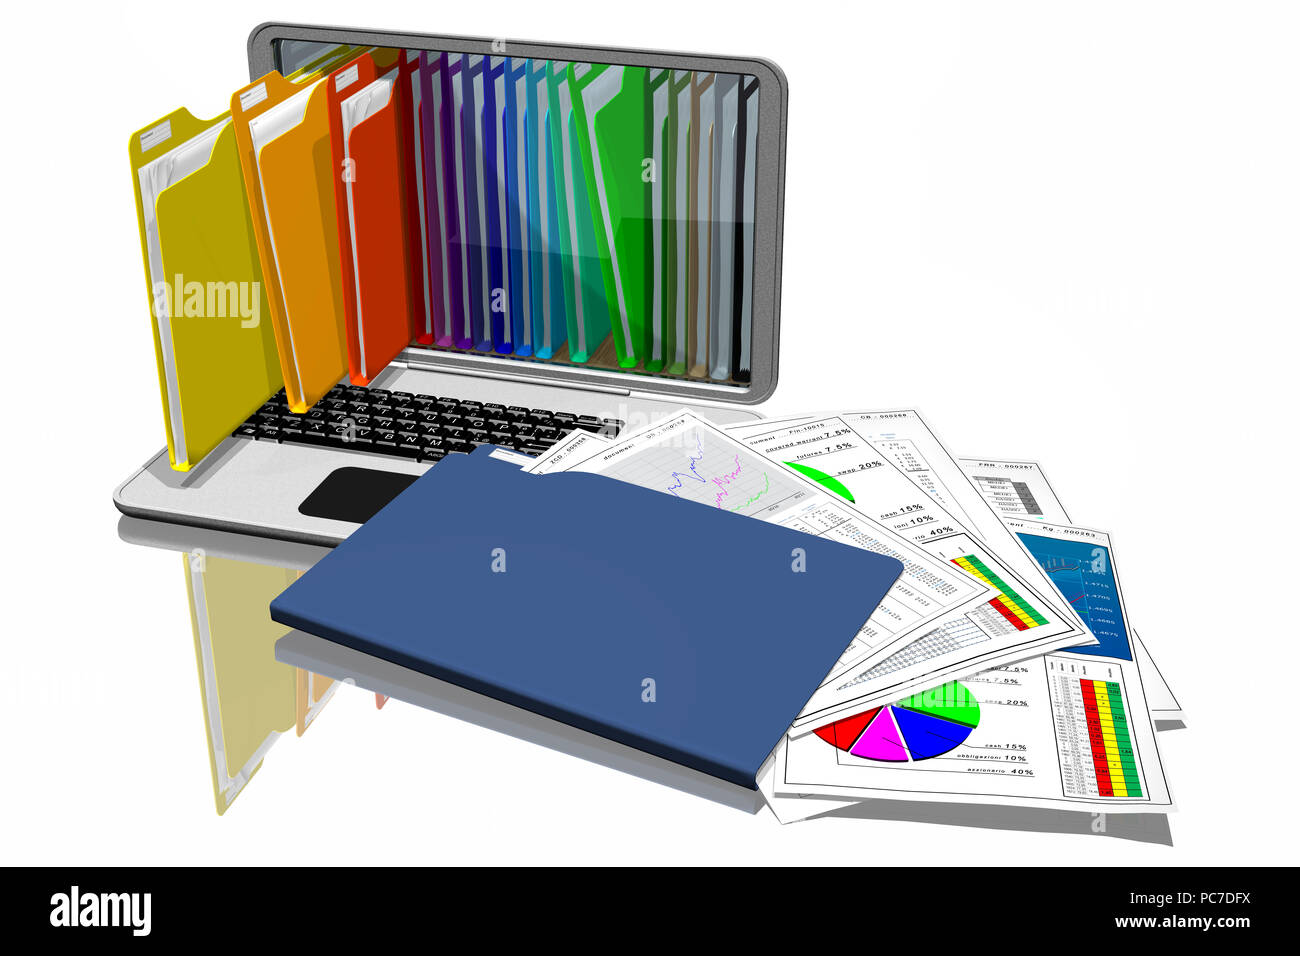 Computers with colored folders for storing documents. Database. - Stock Image